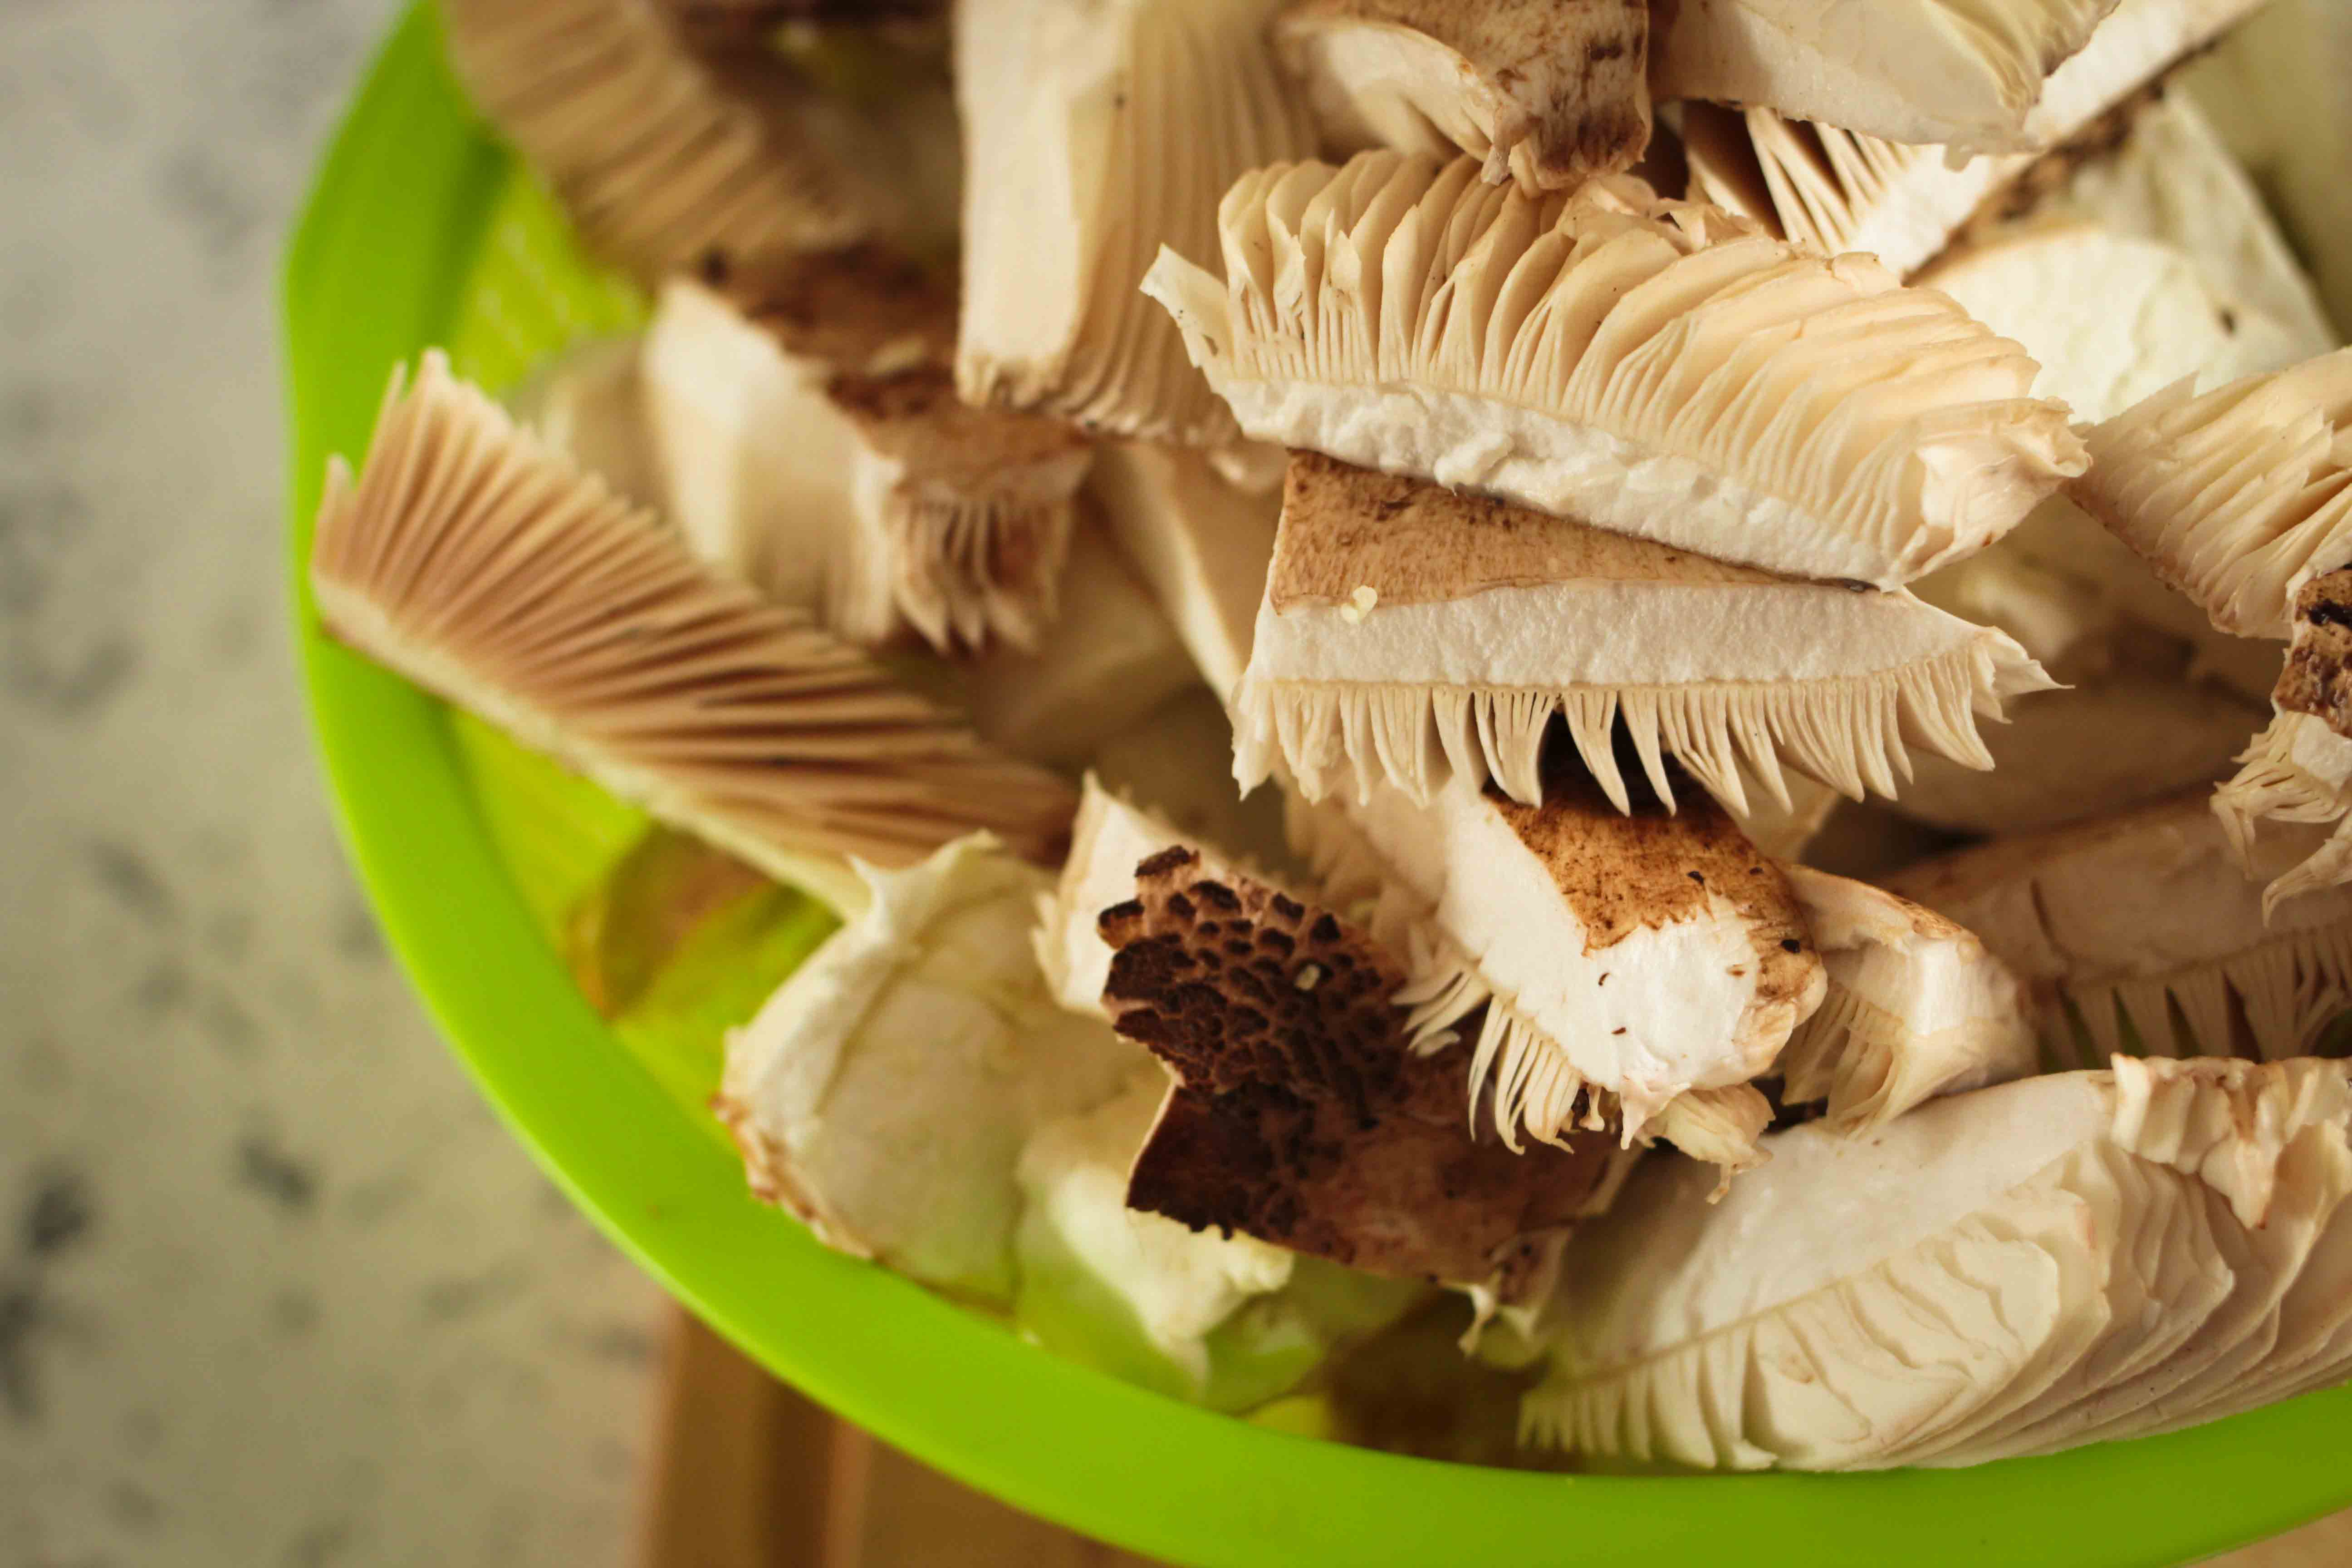 claudialeclercq-edible mushrooms-champignons comestibles_-13